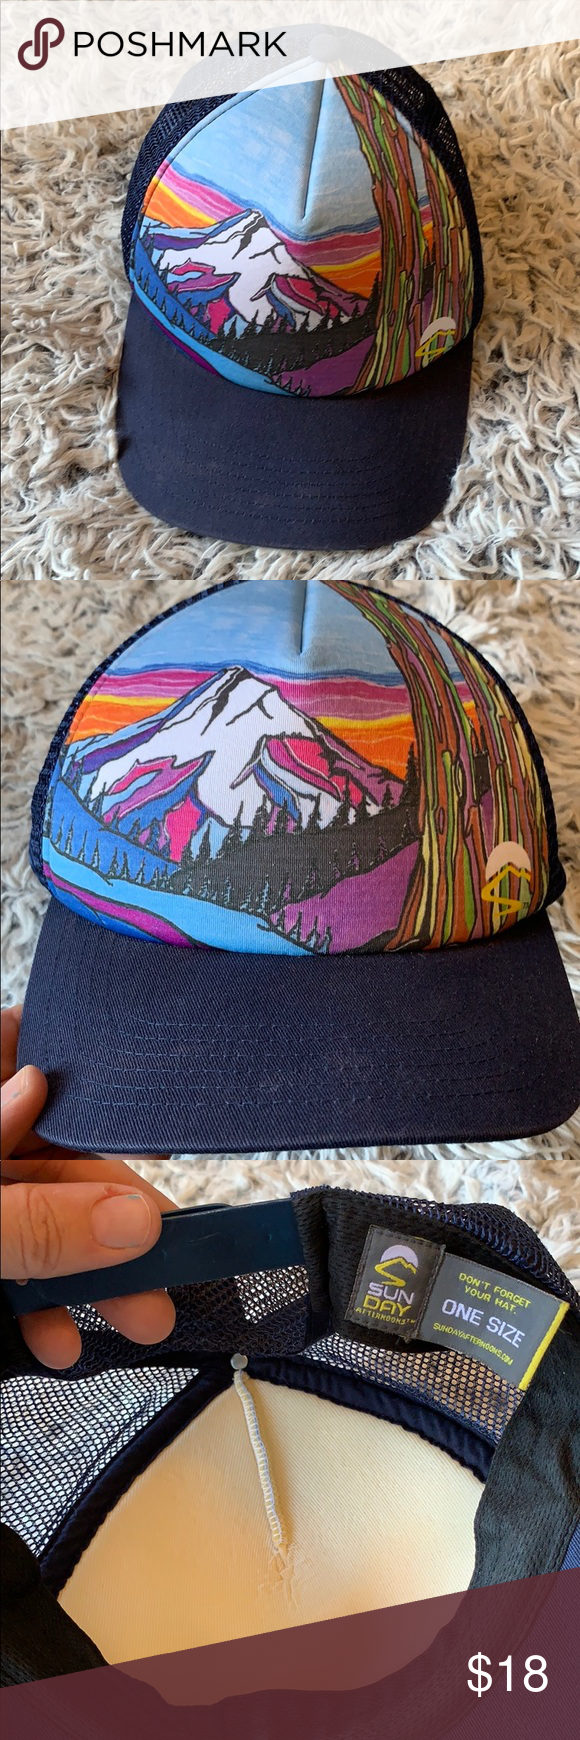 0e98051aab959 Mountain art hat SnapBack Cool graphic hat by Sunday Afternoons sunday  afternoons Accessories Hats